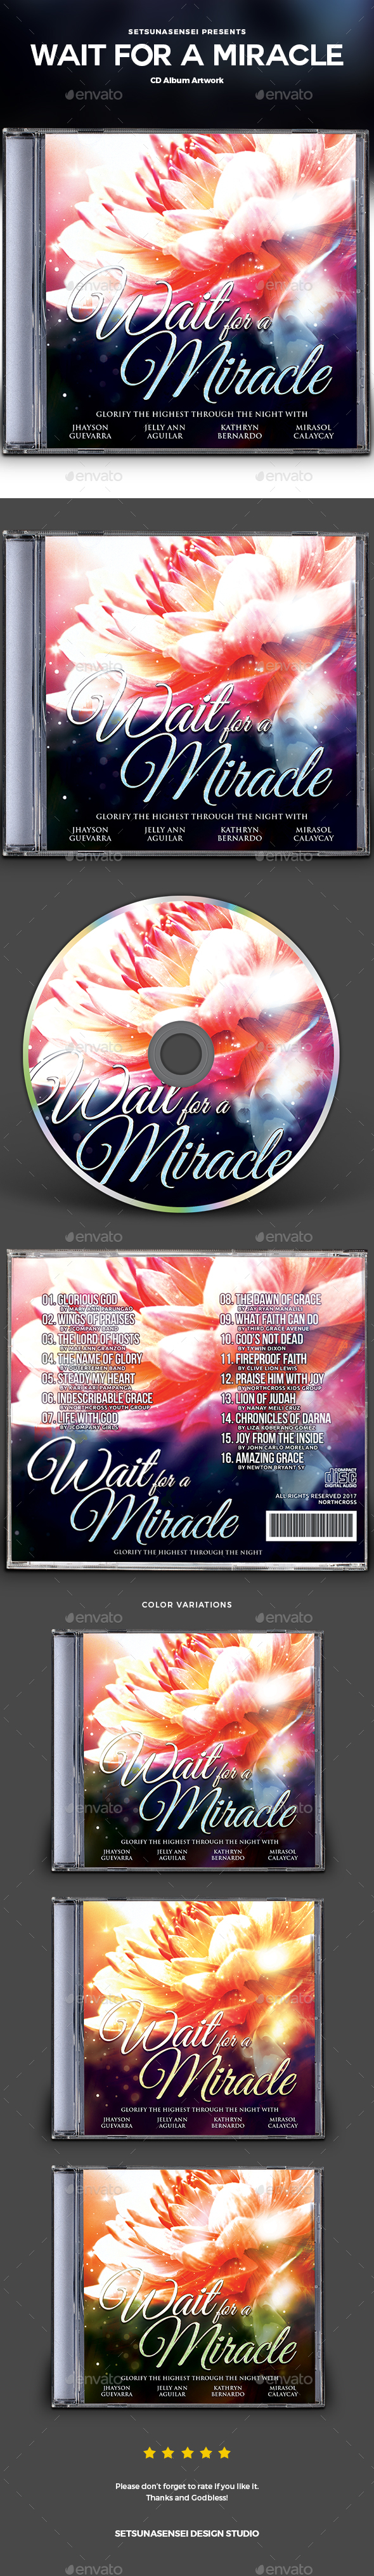 Wait for a Miracle CD Album Artwork - CD & DVD Artwork Print Templates